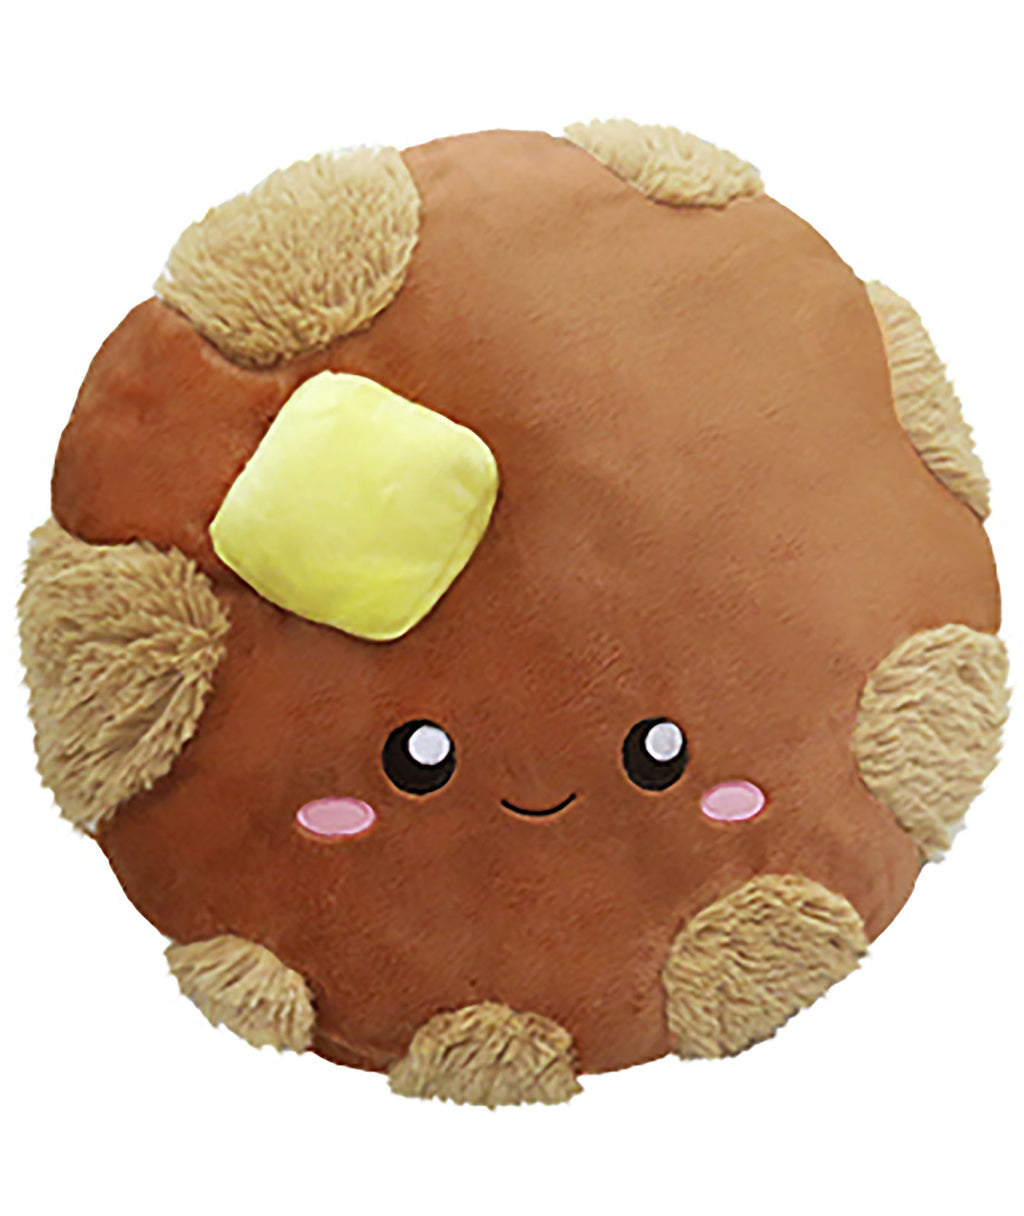 Squishable Pancakes